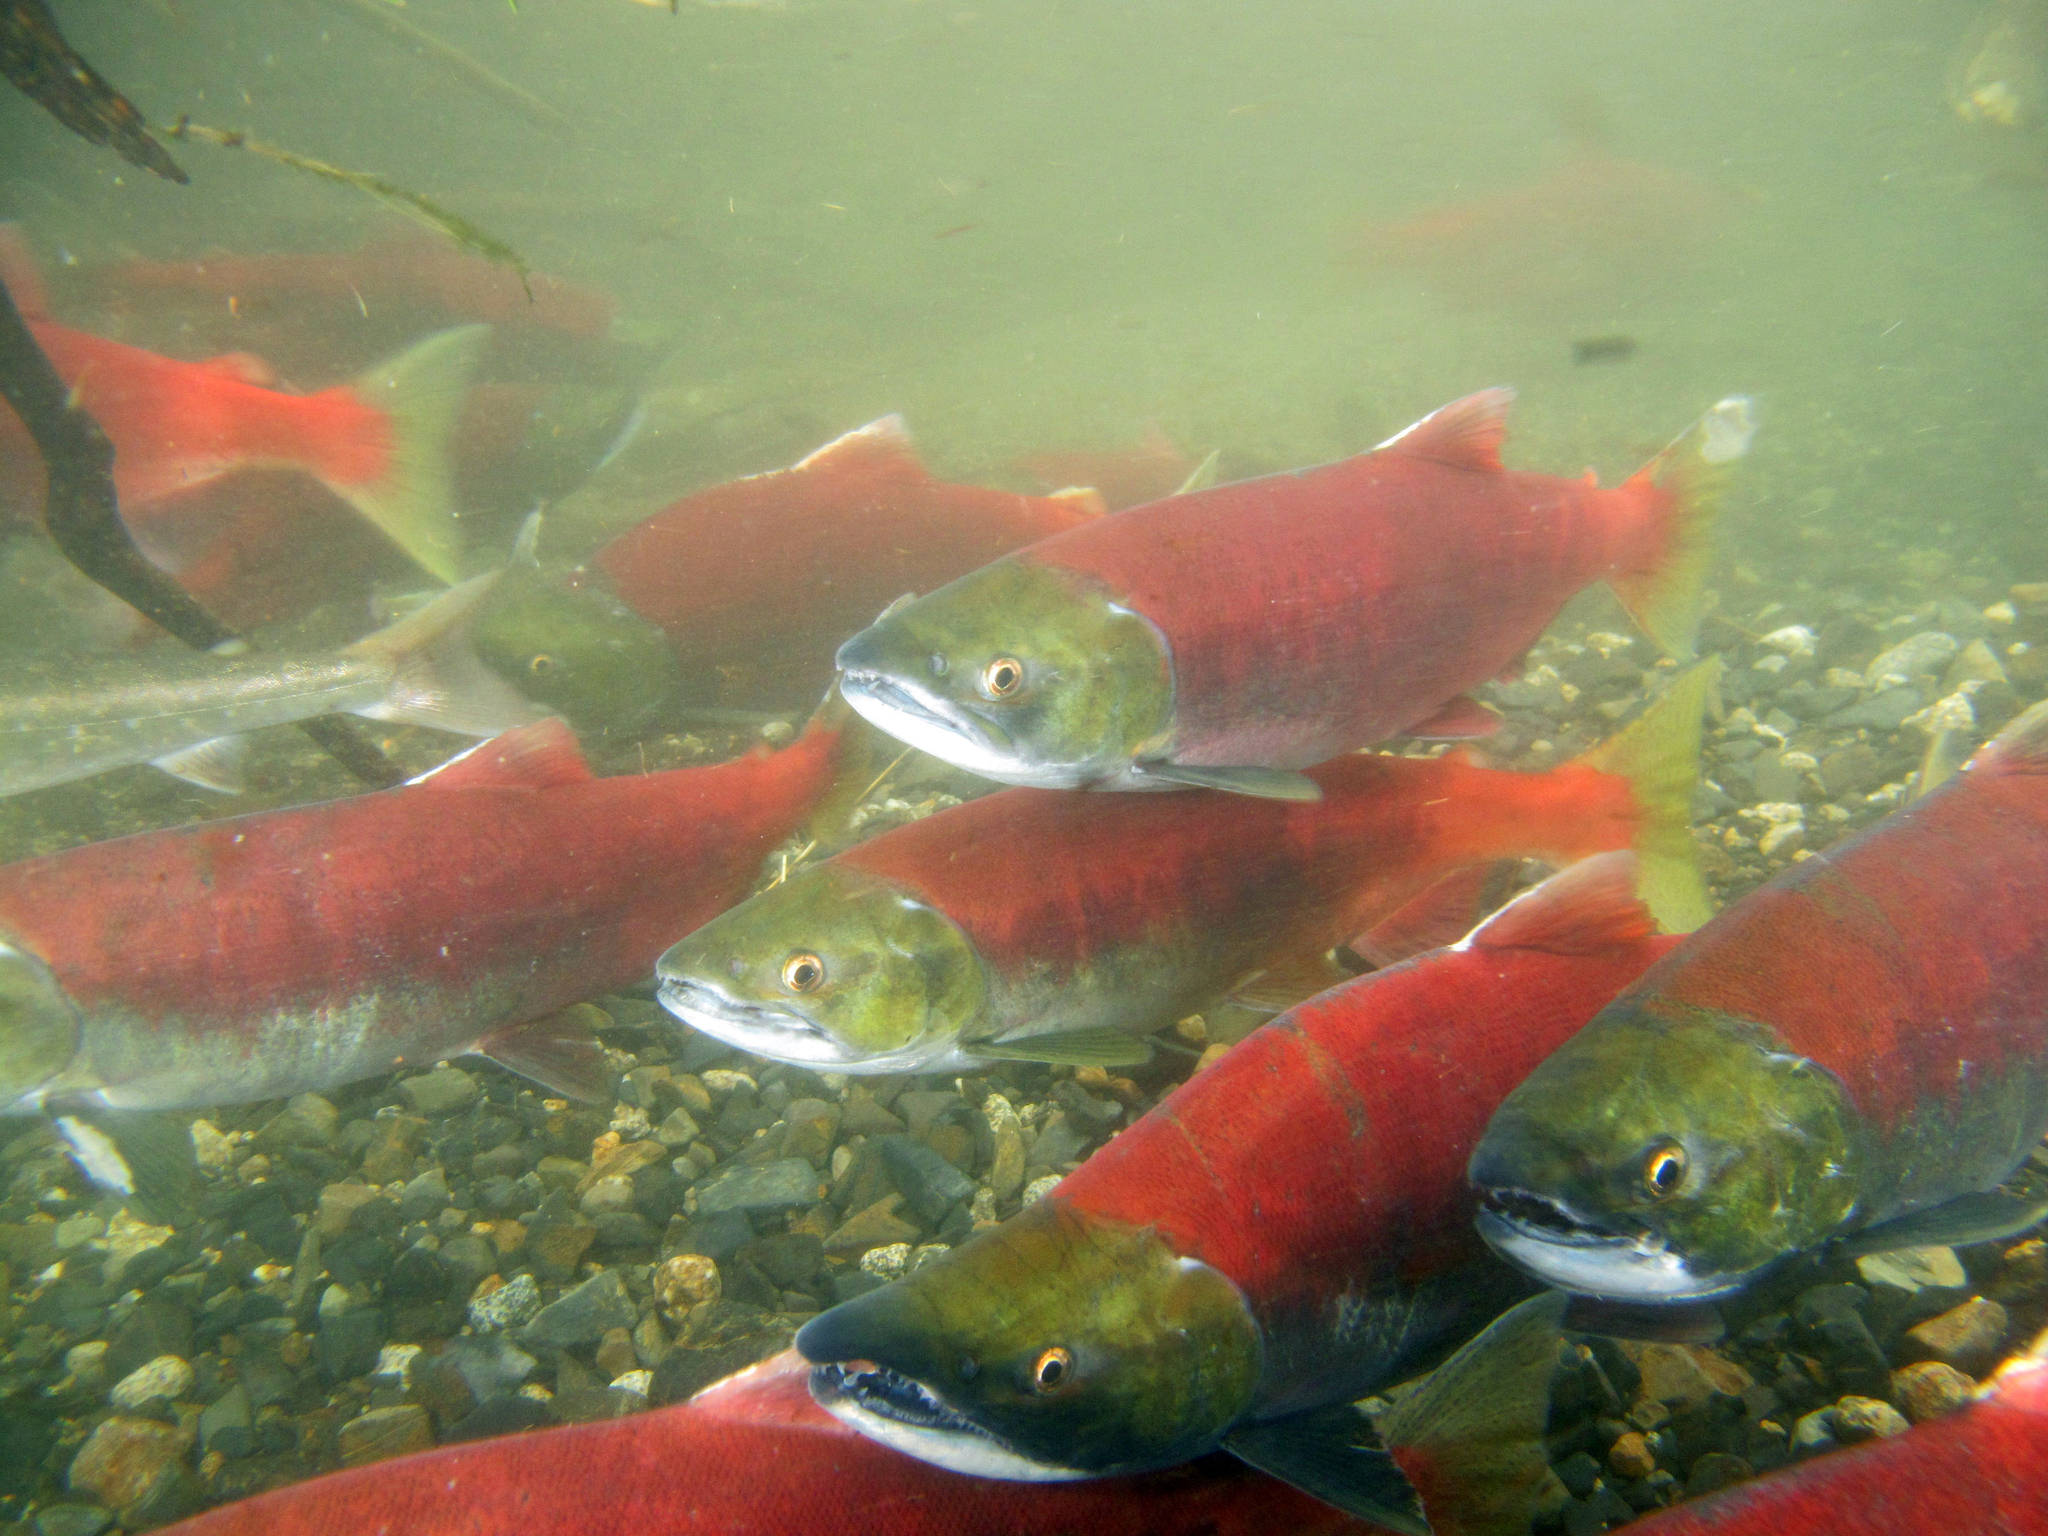 Sockeye salmon school in a small Bristol Bay creek in the summer of 2018. Municipal leaders will be voting on a resolution at the 2020 Union of B.C. Municipalities Convention for more nature-based solutions in flood management that doesn't compromise salmon habitat. (Courtesy Photo | Mary Catharine Martin)